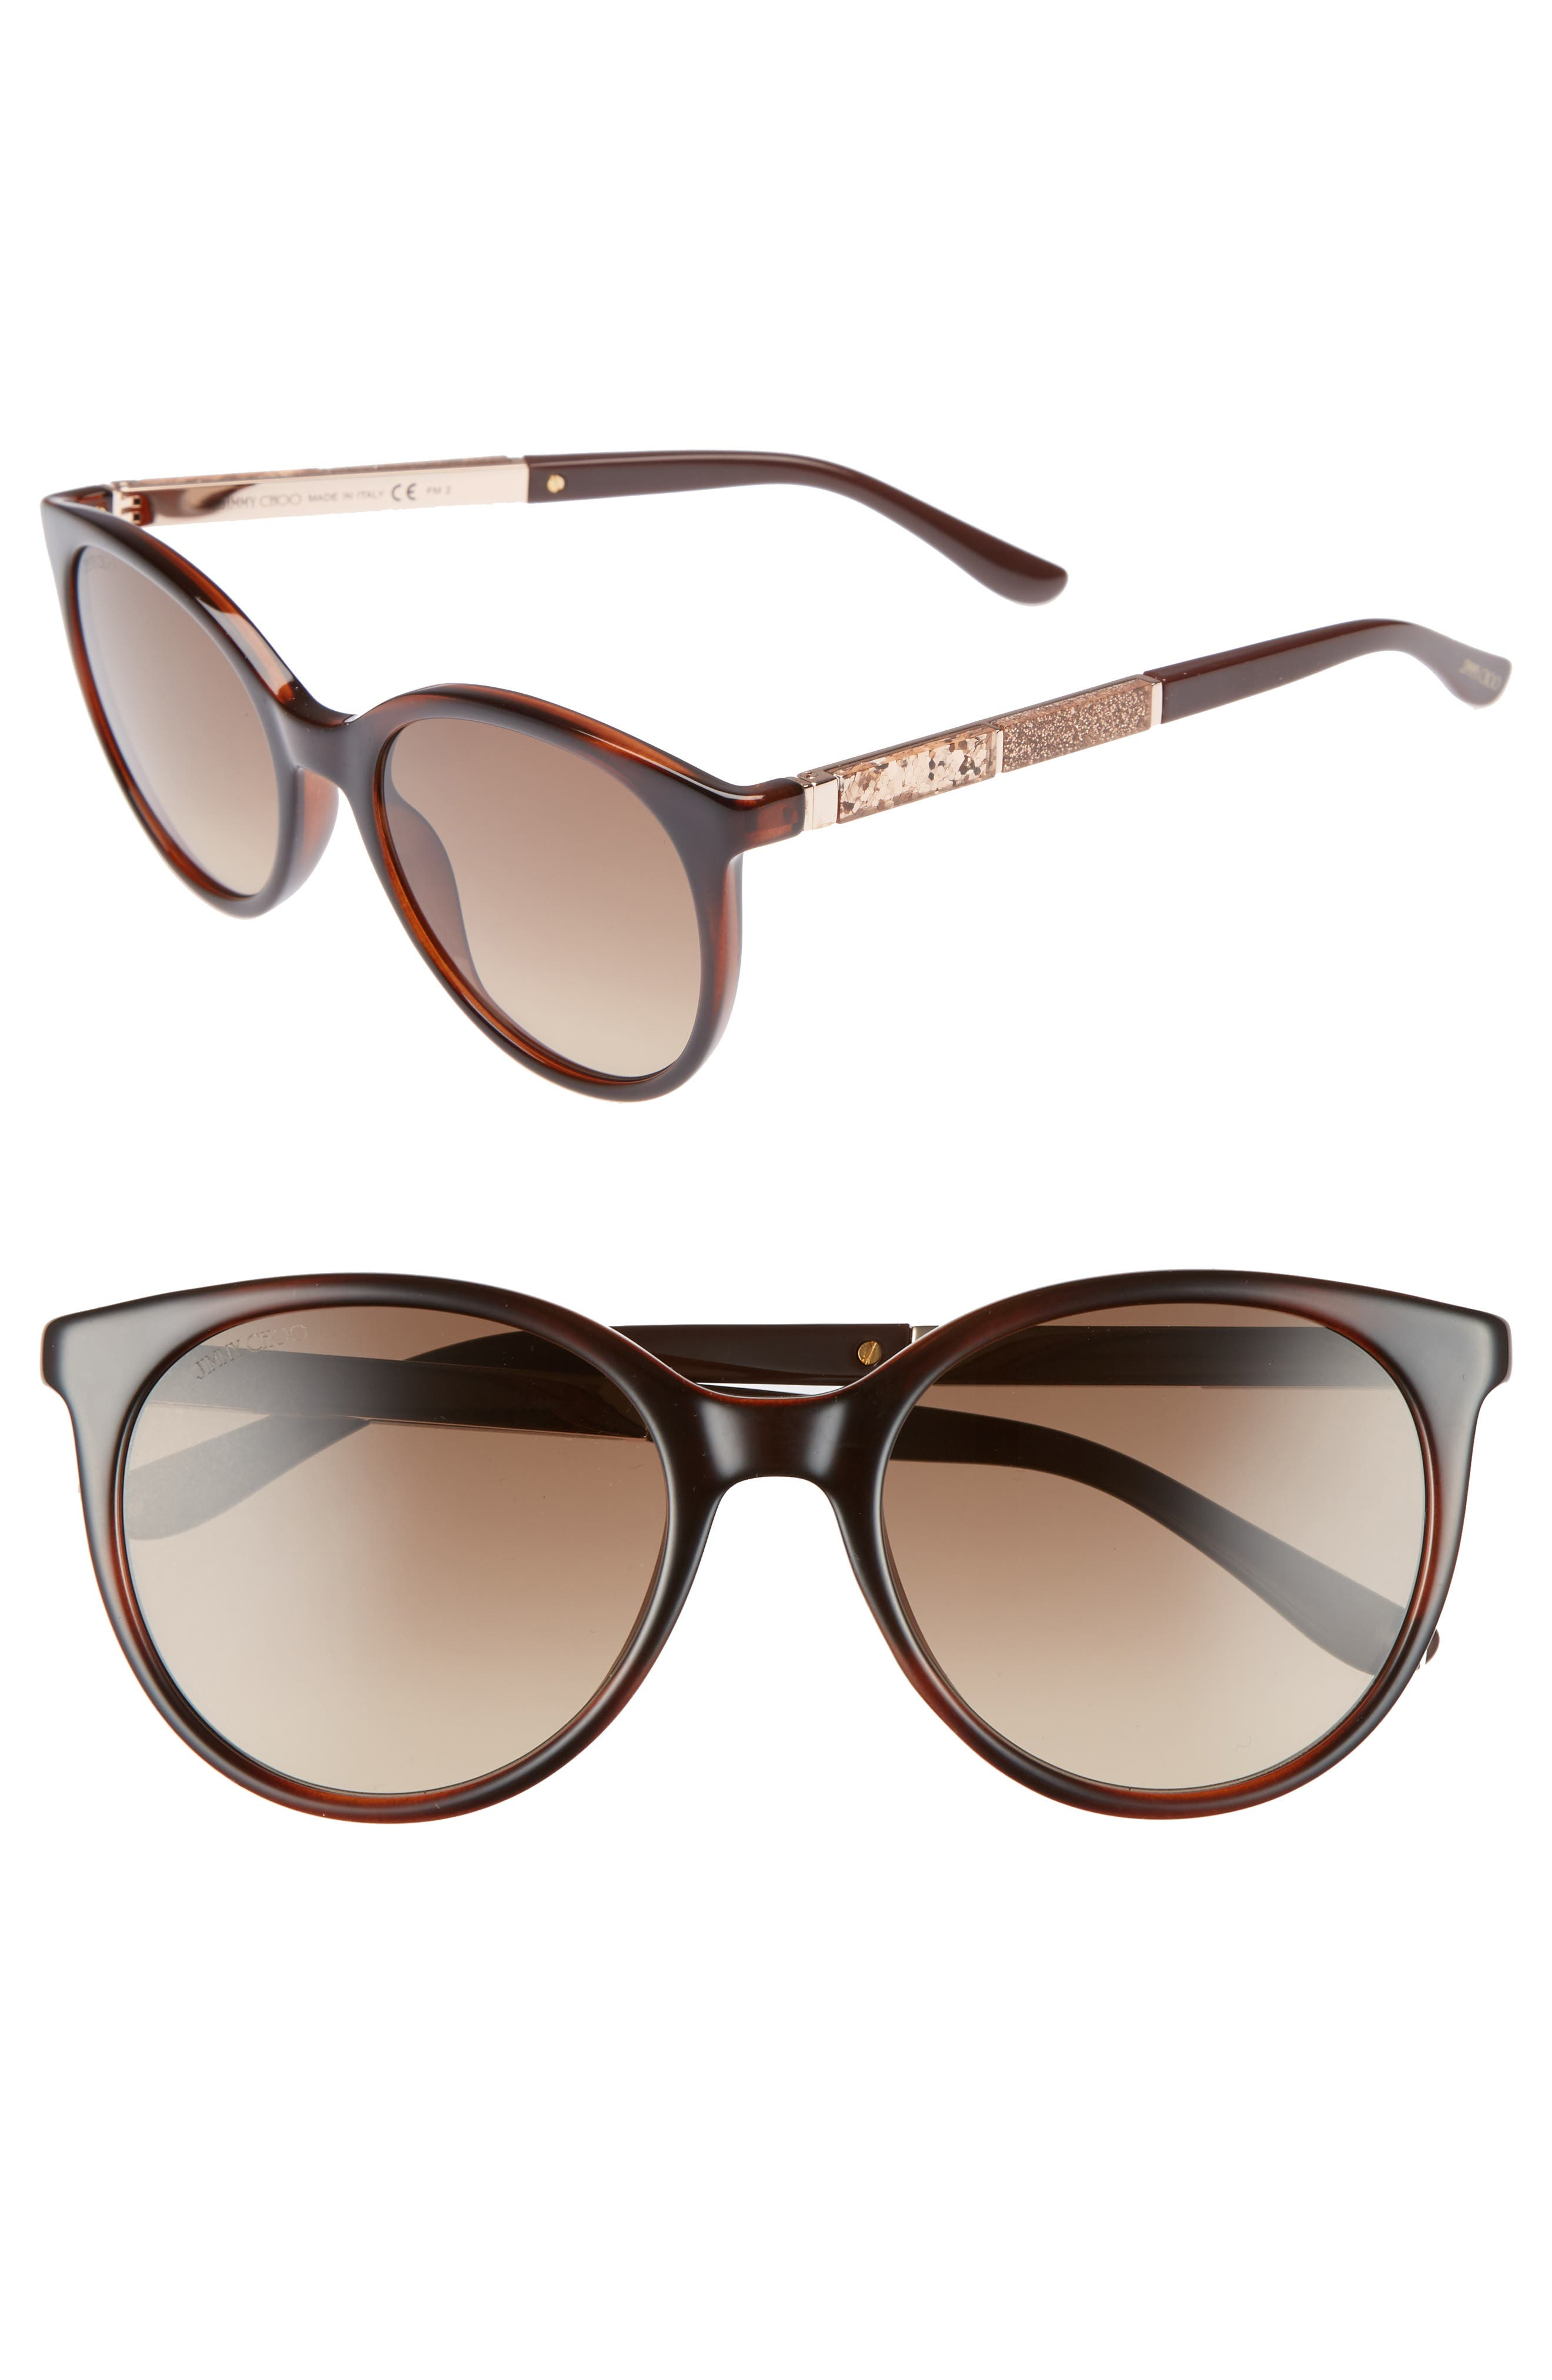 Jimmy Choo Erie 5m Gradient Round Sunglasses - Havana Brown